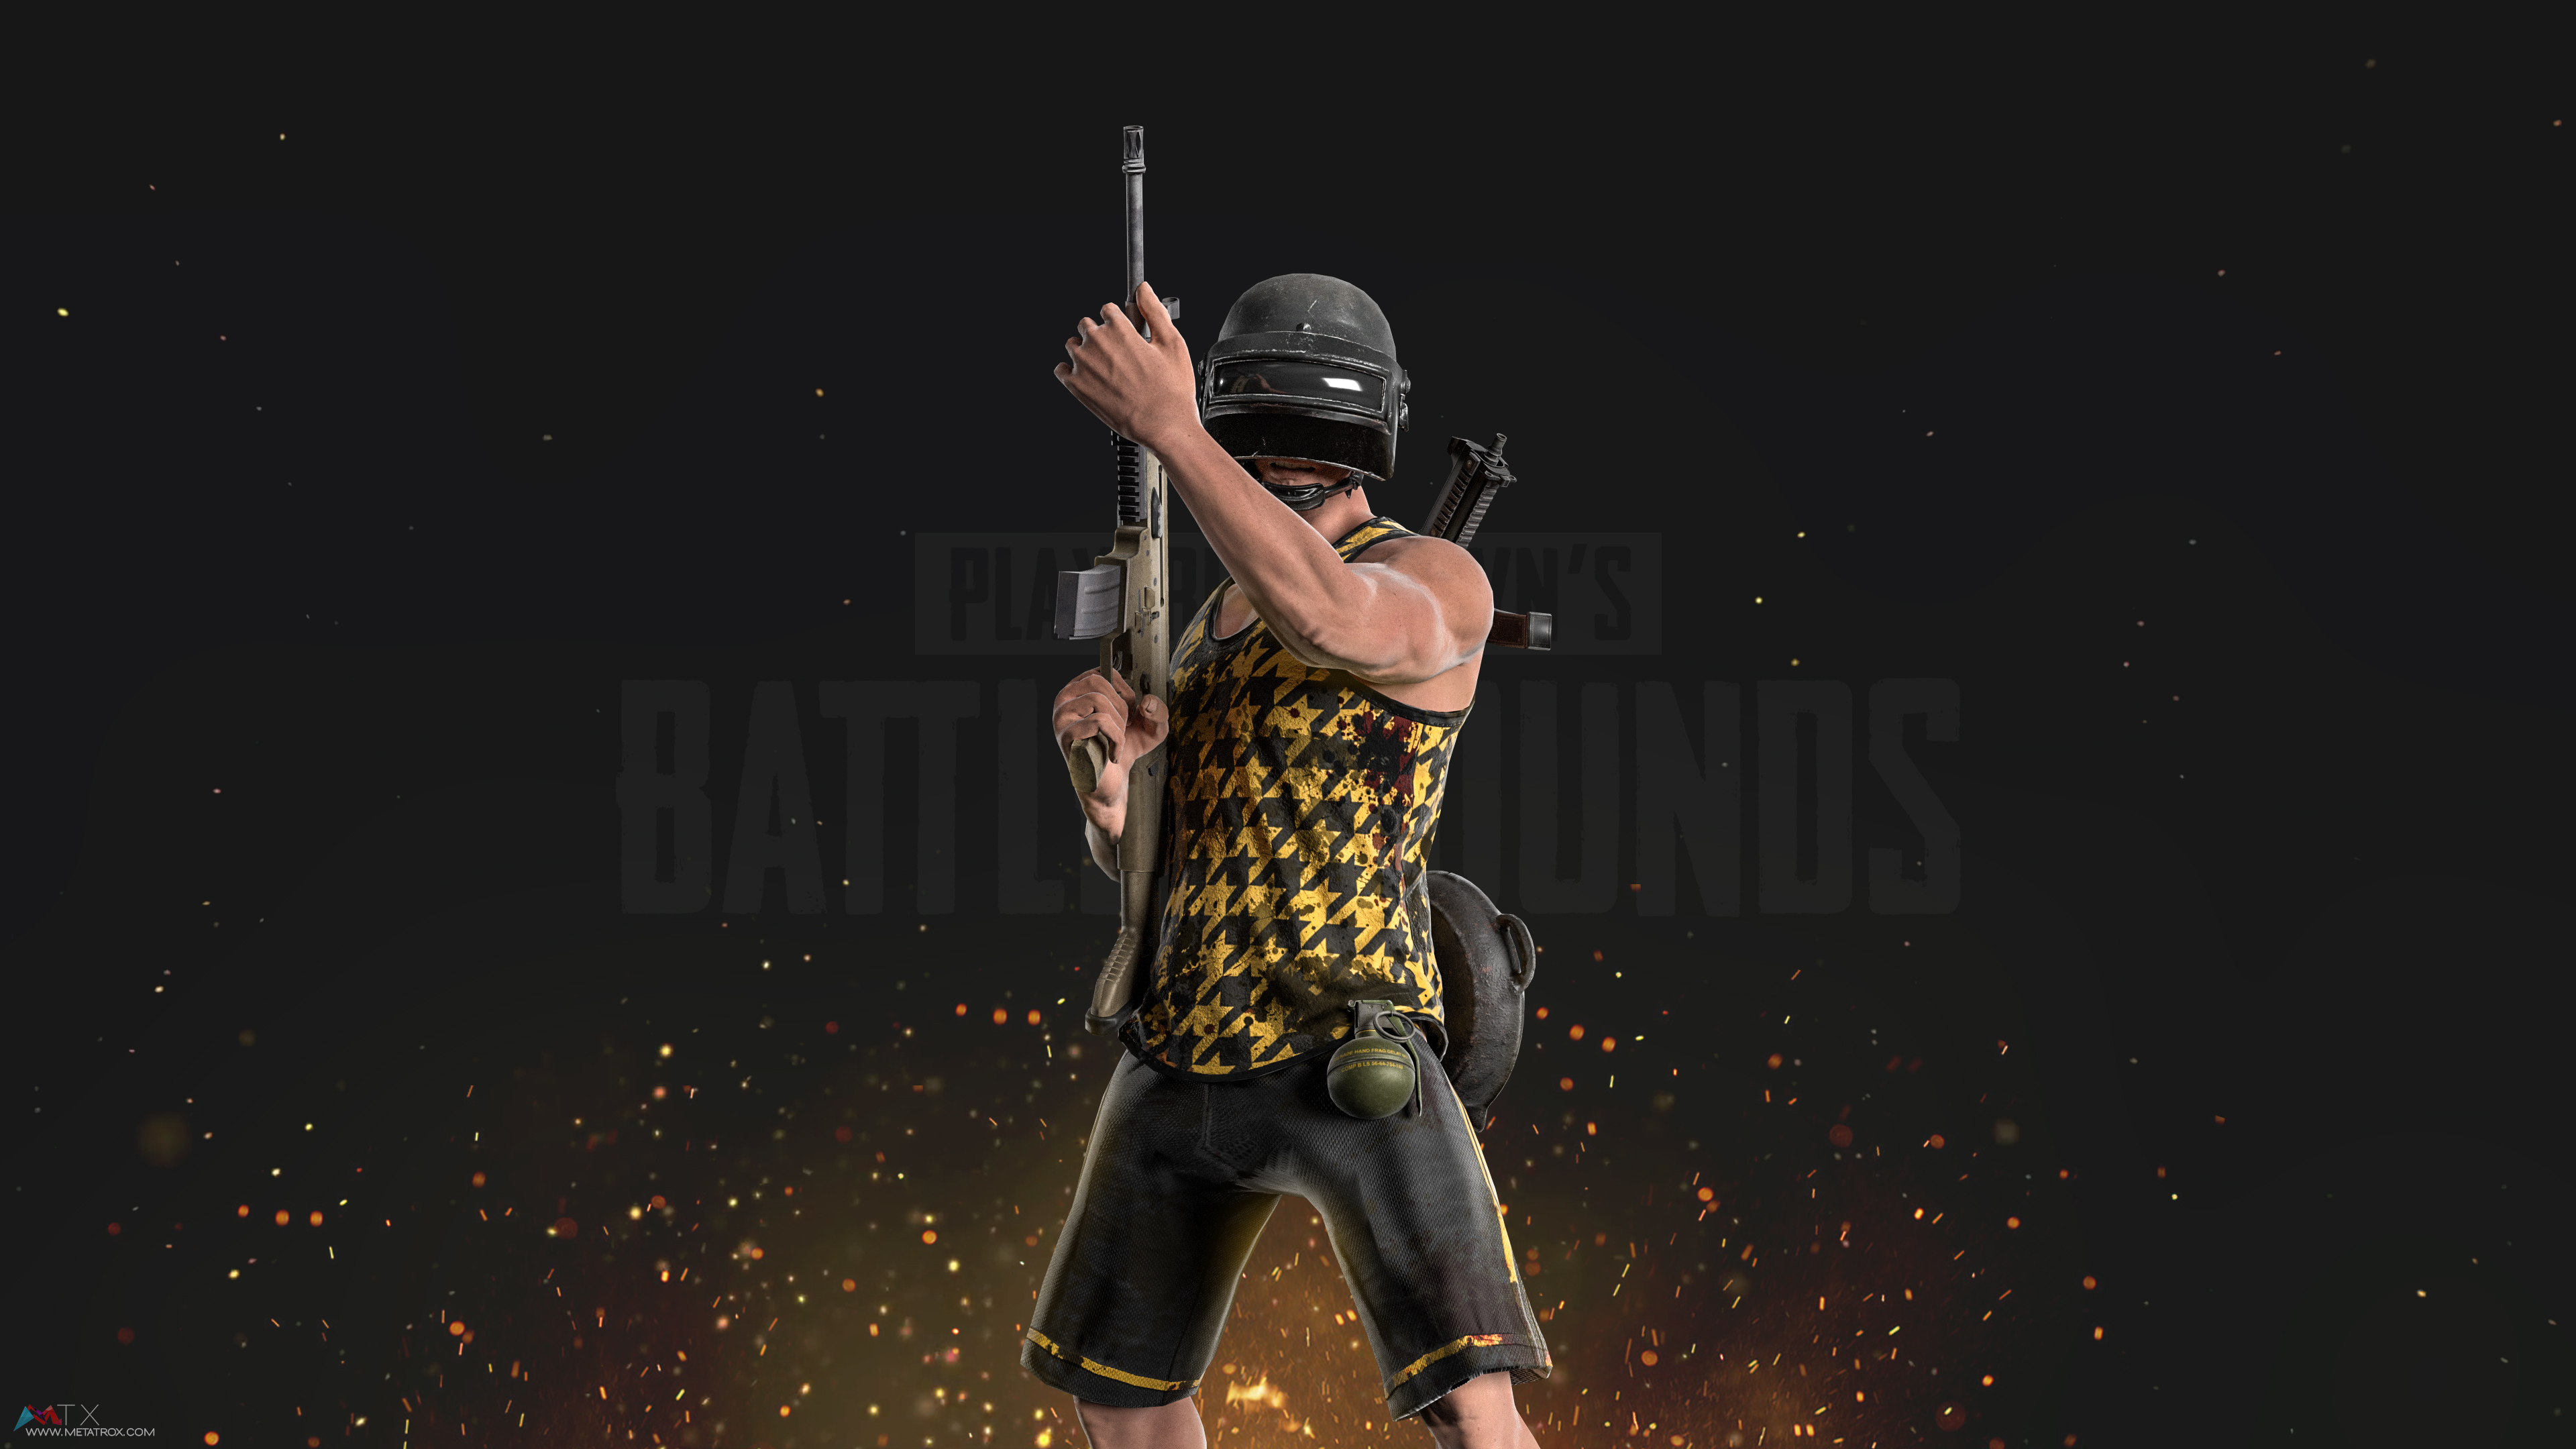 High Resolution Pubg Wallpaper 4k: Pubg, HD Games, 4k Wallpapers, Images, Backgrounds, Photos